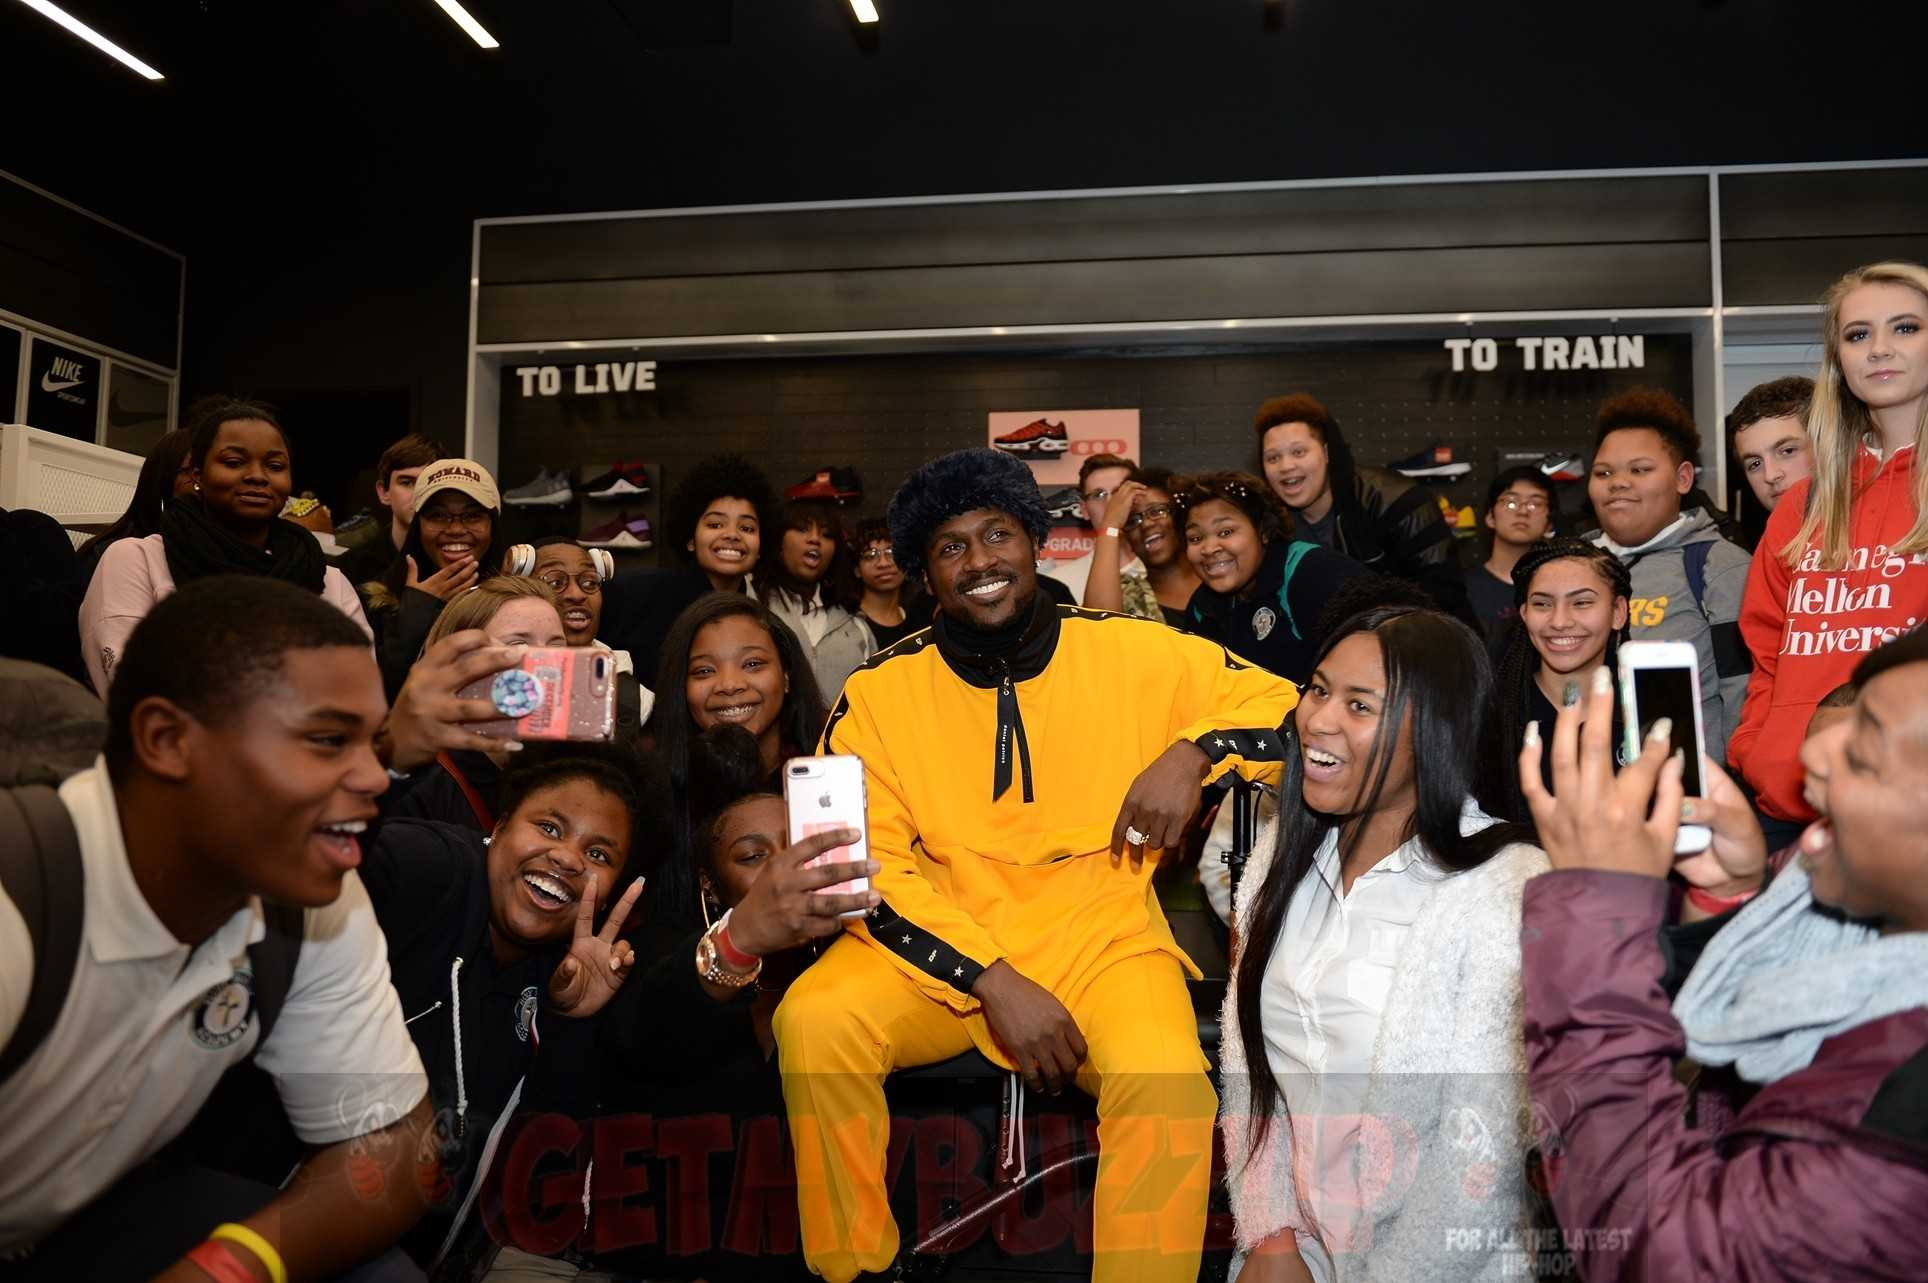 CHAMPS SPORTS AND STEELERS WR ANTONIO BROWN HOST HOLIDAY IN-STORE EVENT [PHOTOS]